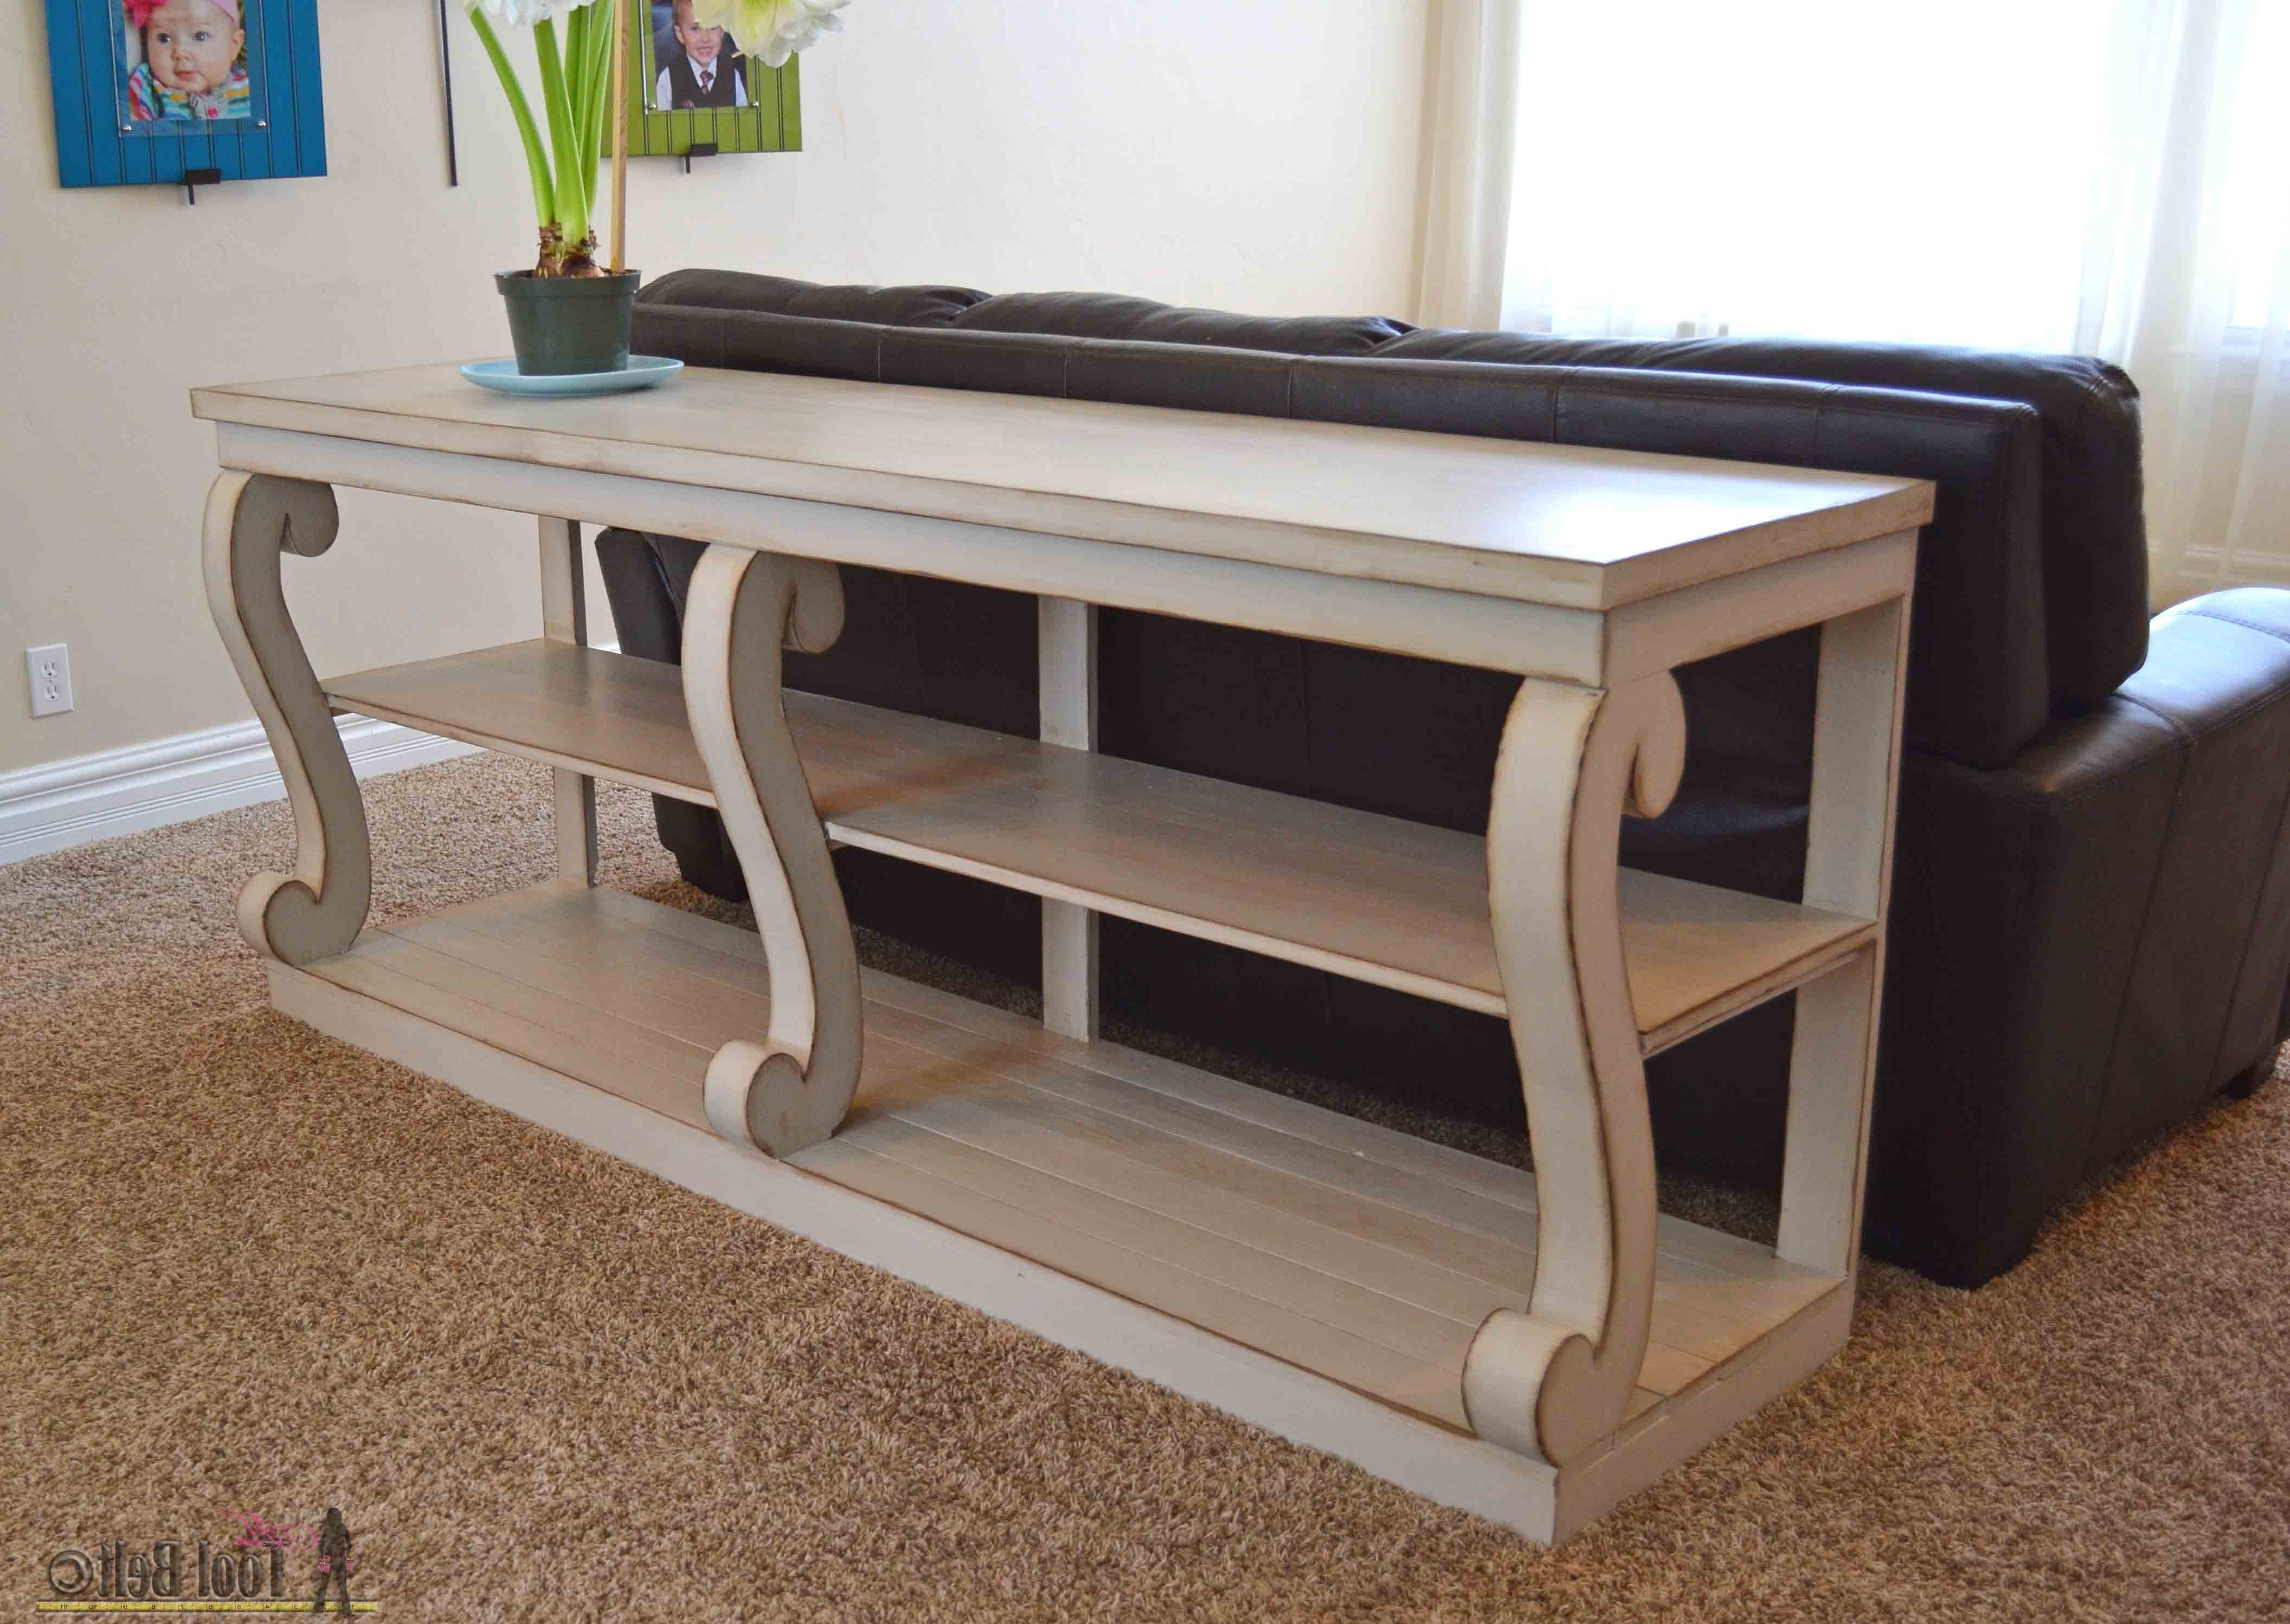 Fashionable Sofas With Back Consoles Throughout Console Table With Scroll Legs – Her Tool Belt (View 4 of 15)